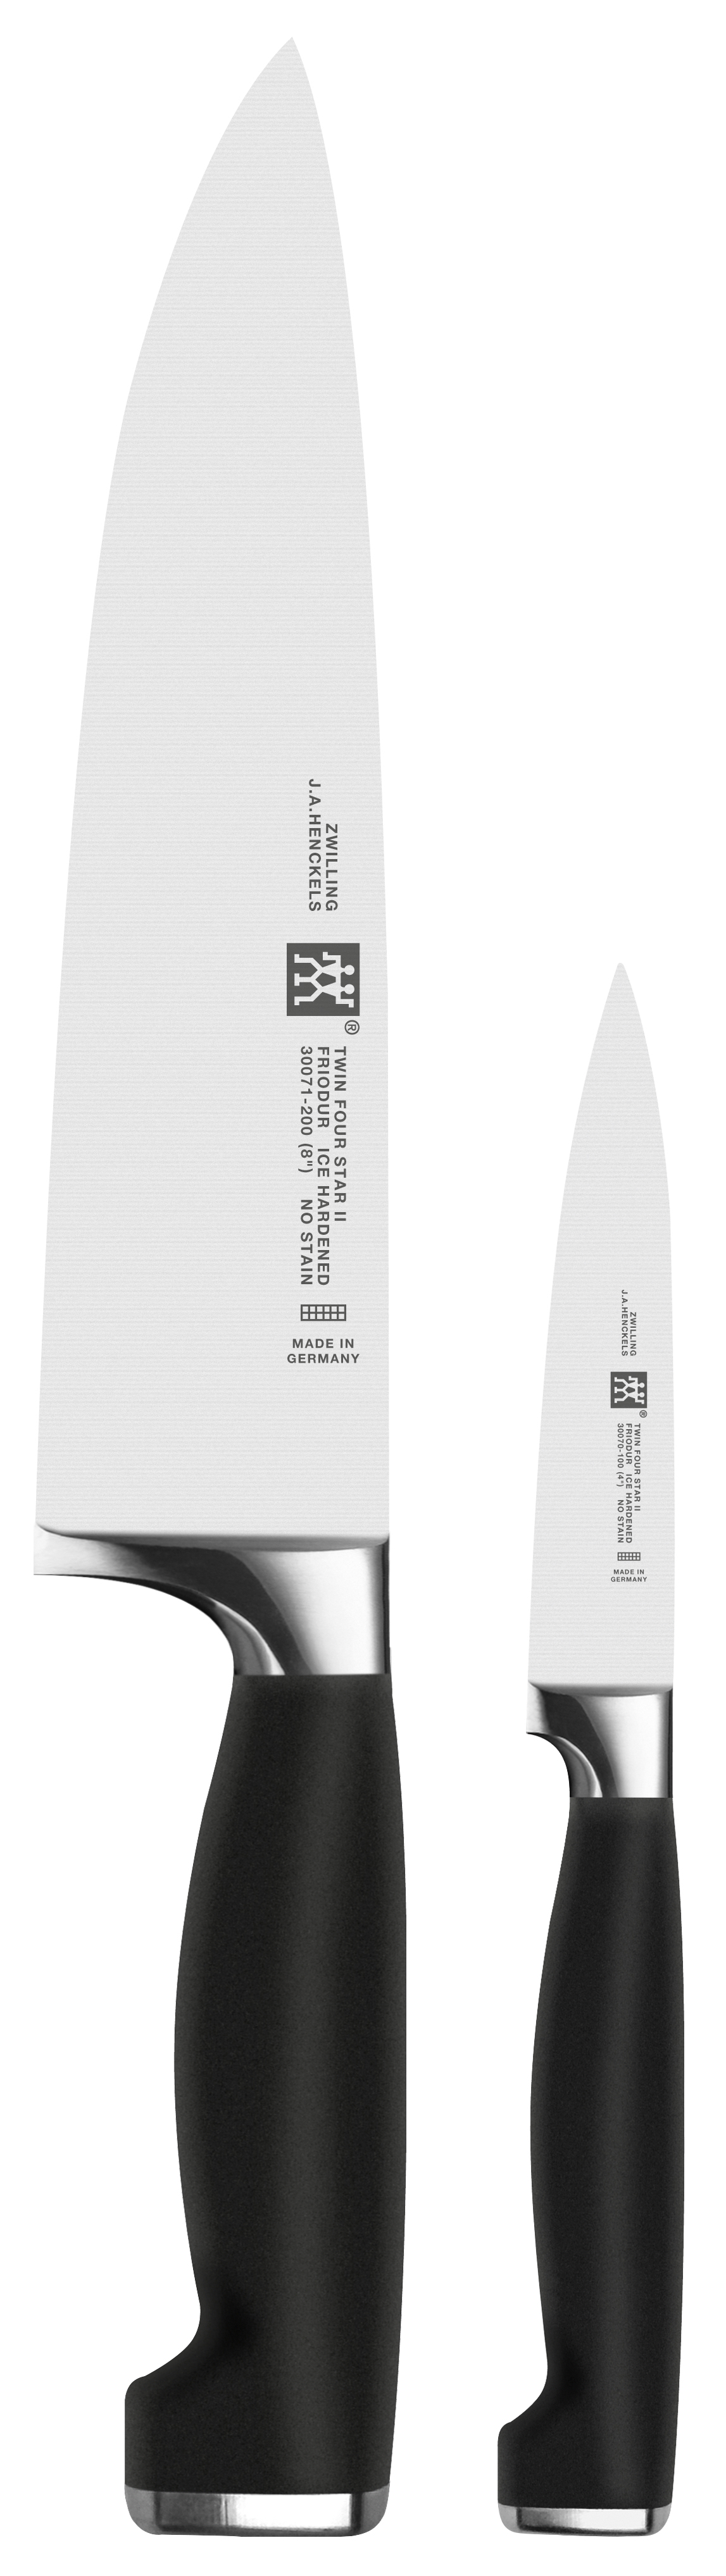 Zwilling: Twin Four Star II Messerset, 2-tlg.